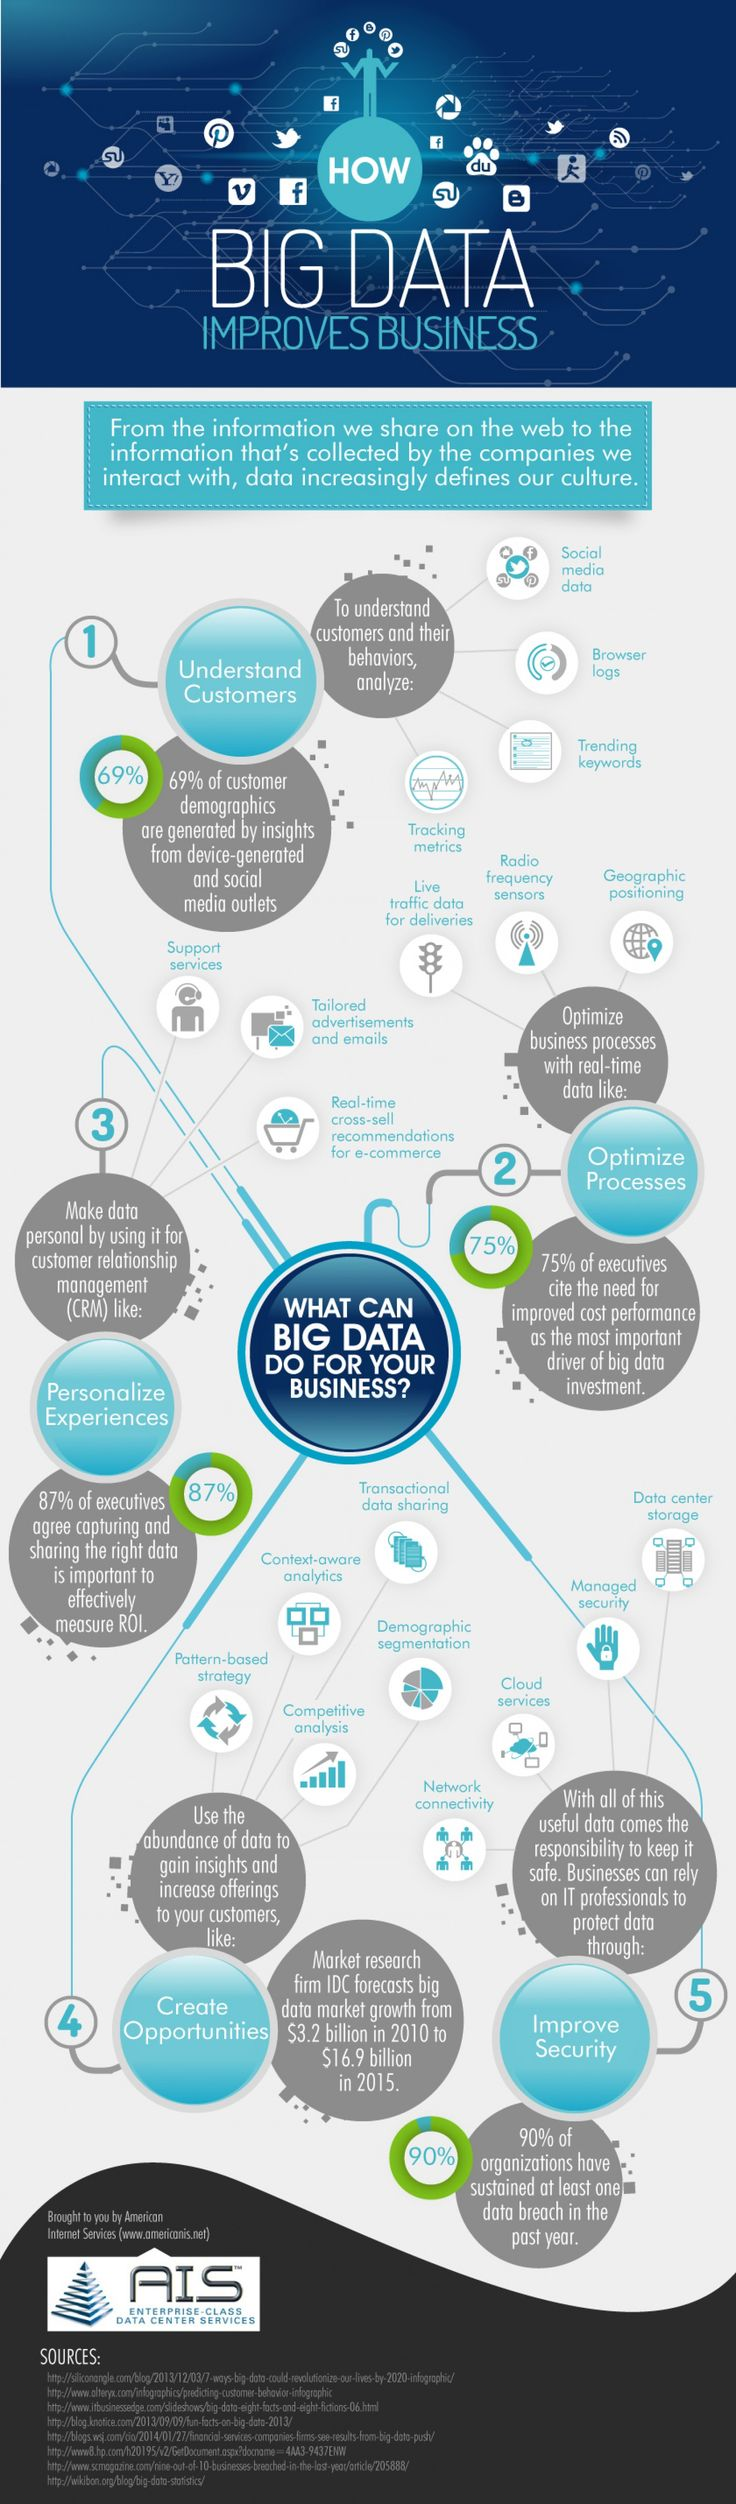 How Big Data Improves Business